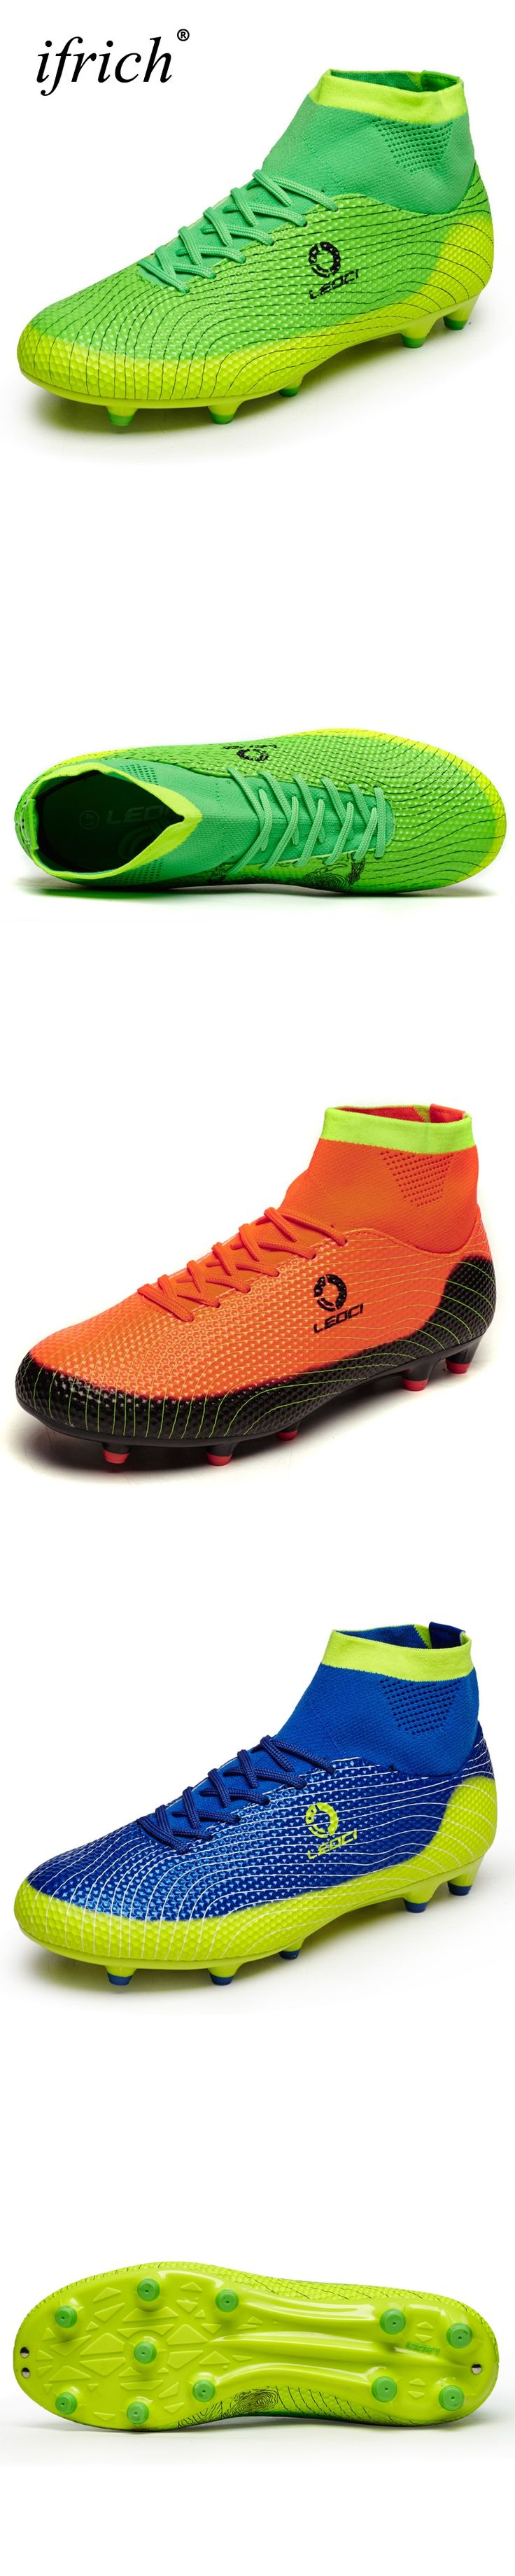 Ifrich New Mens Kids Football Boots With Ankle Soccer Shoes Green Blue Soccer Cleats High Tops Football Trainers Long Spikes